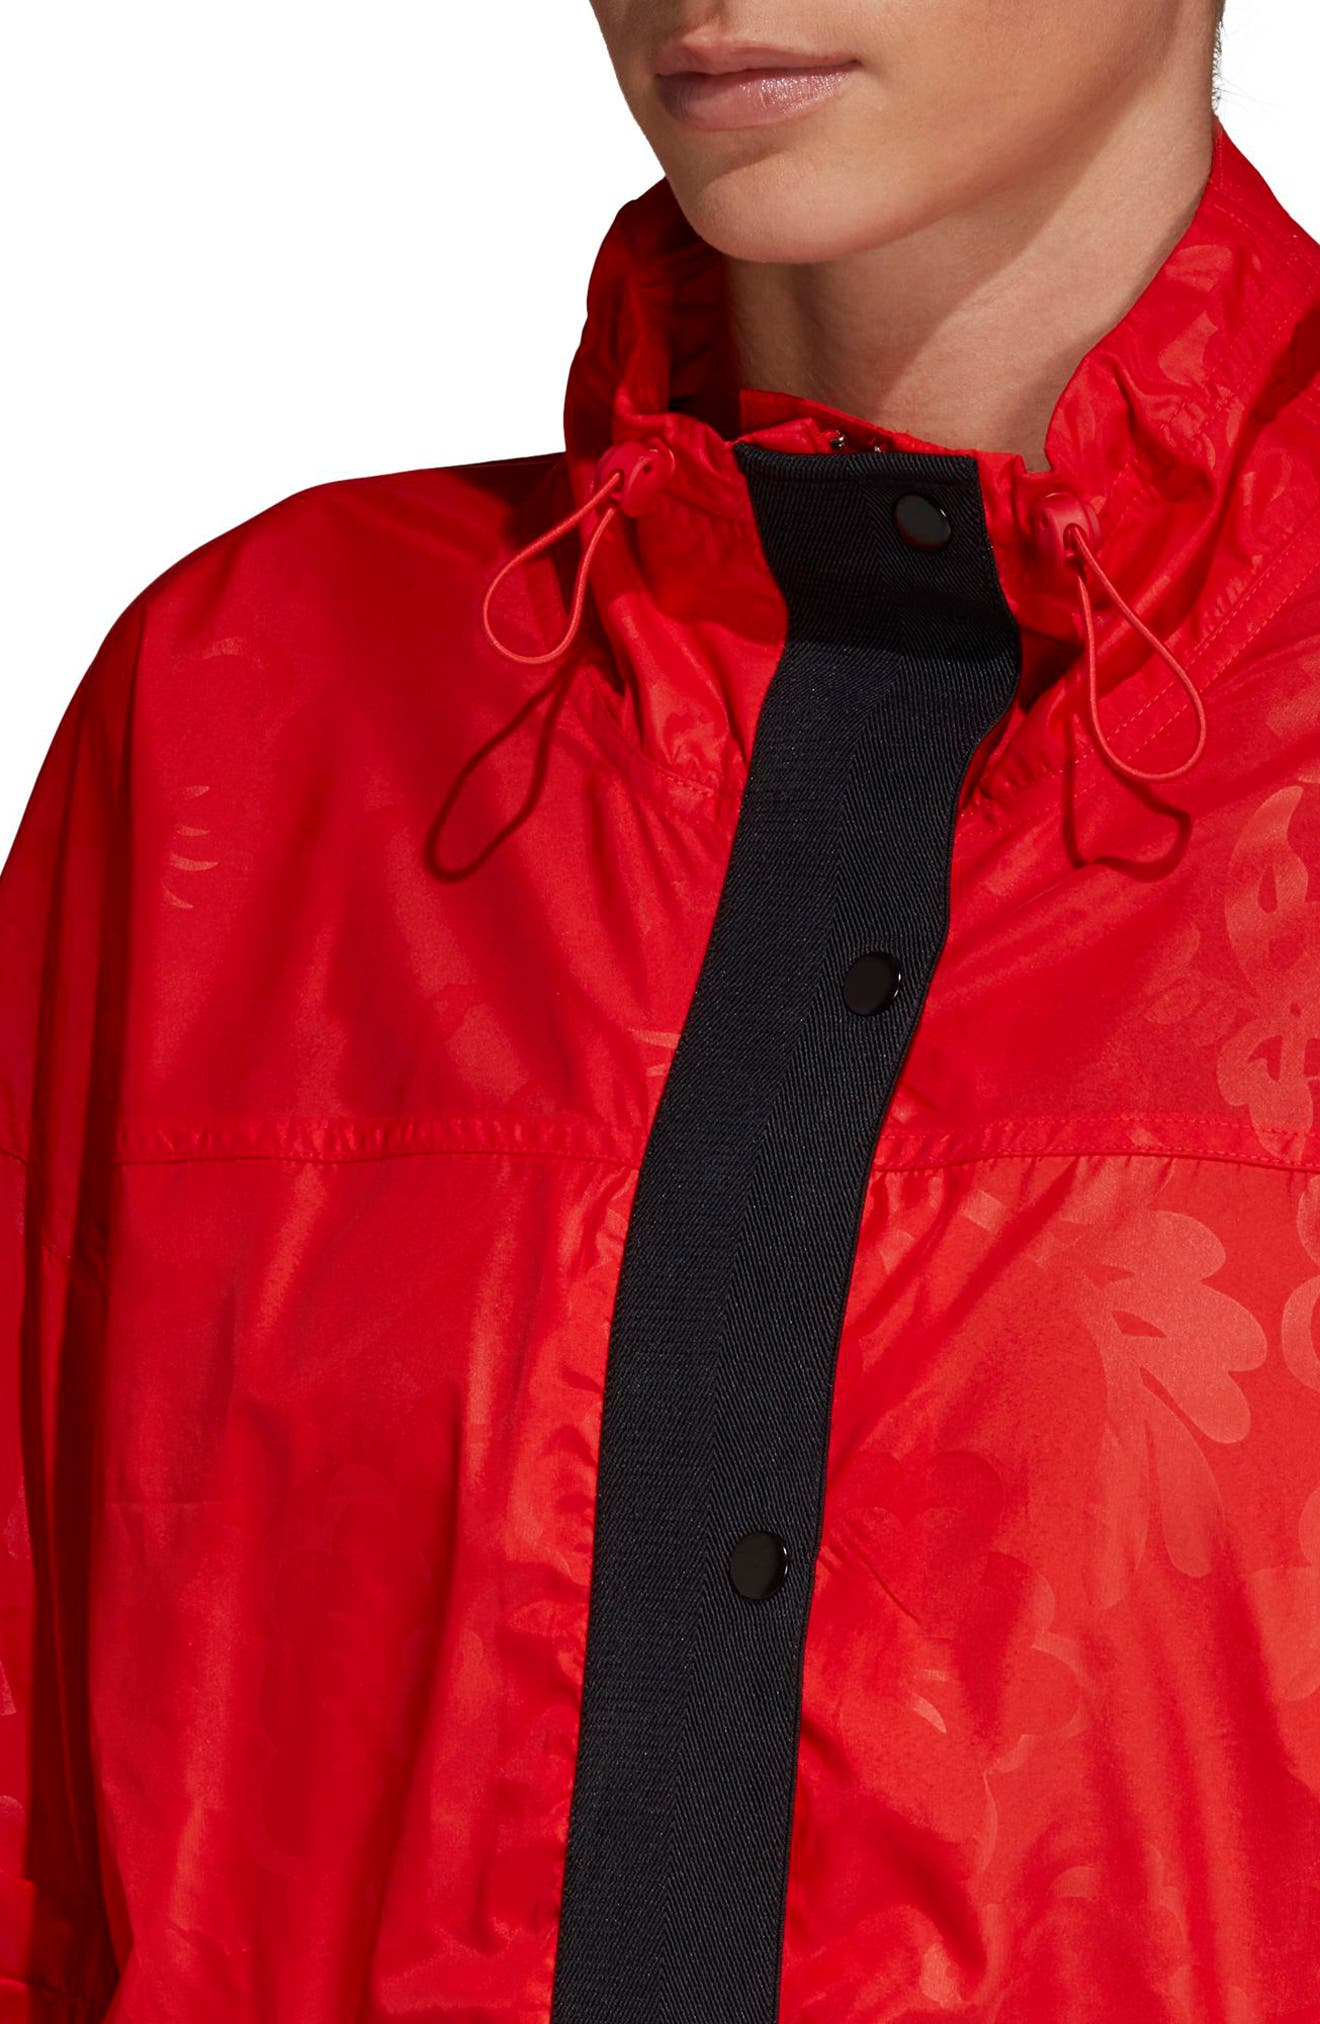 Run Wind Jacket,                             Alternate thumbnail 6, color,                             CORRED